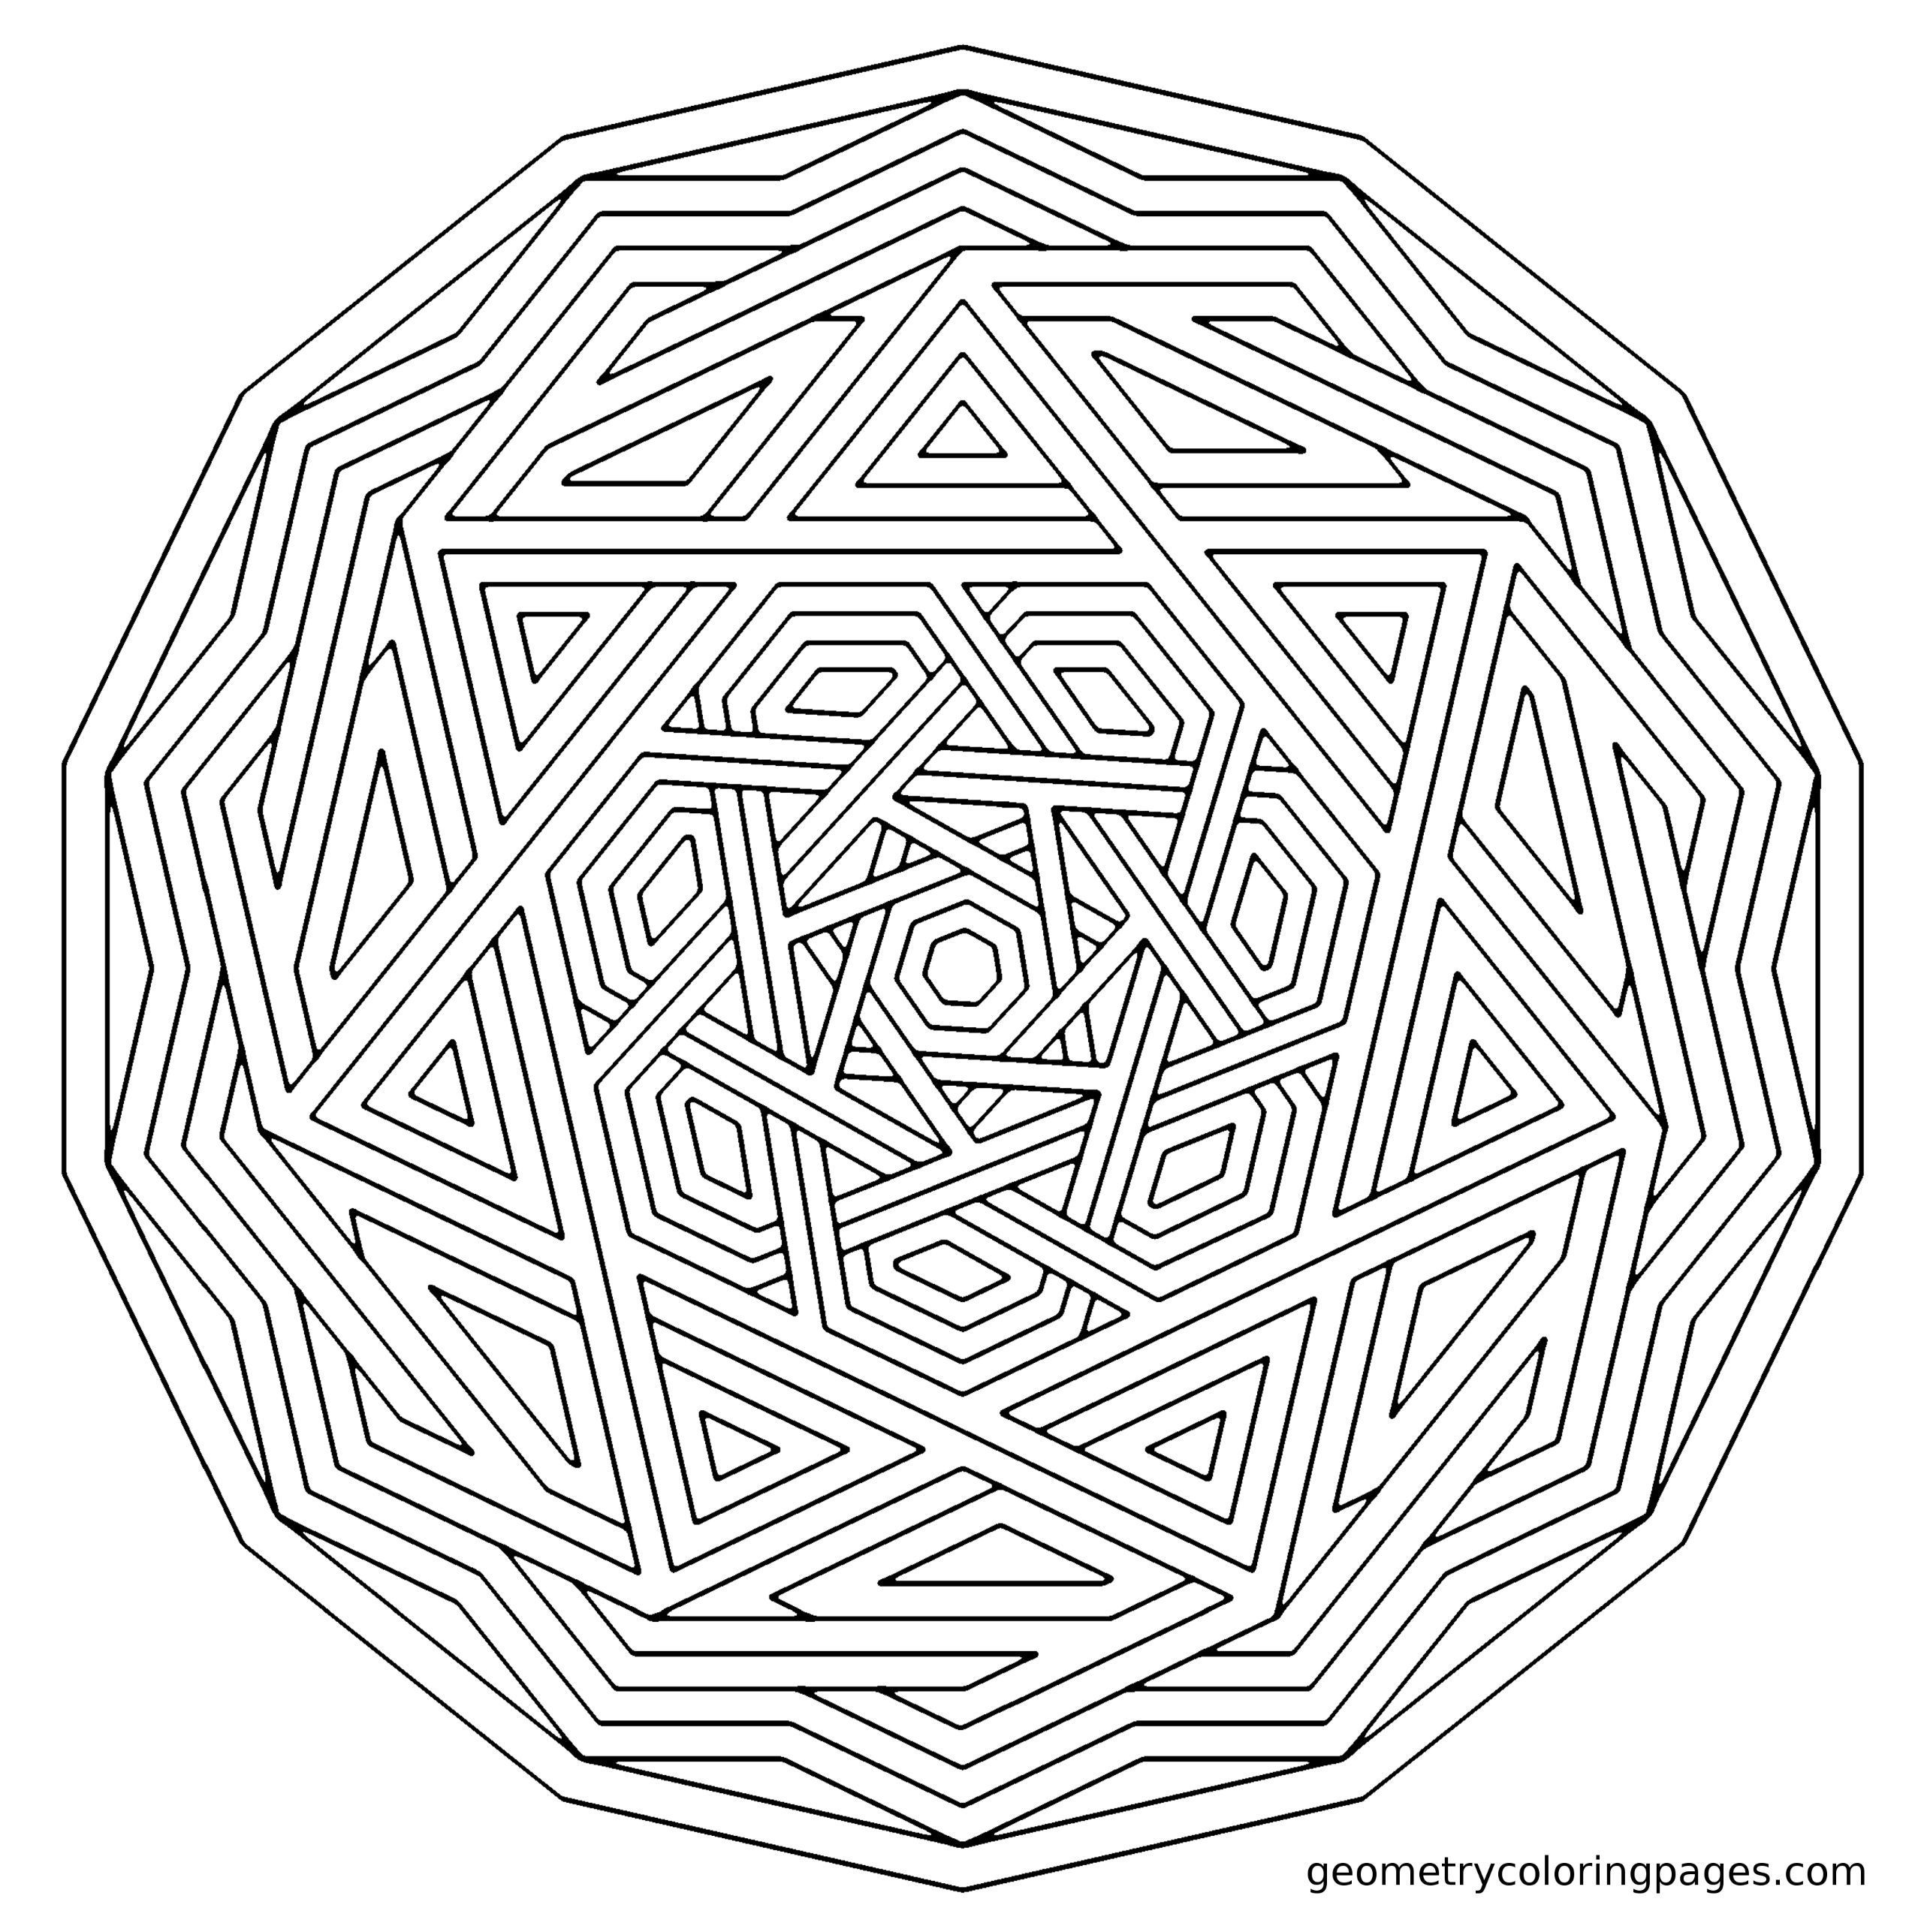 Coloring Sheets For Kids On Worrying  plex Geometric Coloring Pages Coloring Home